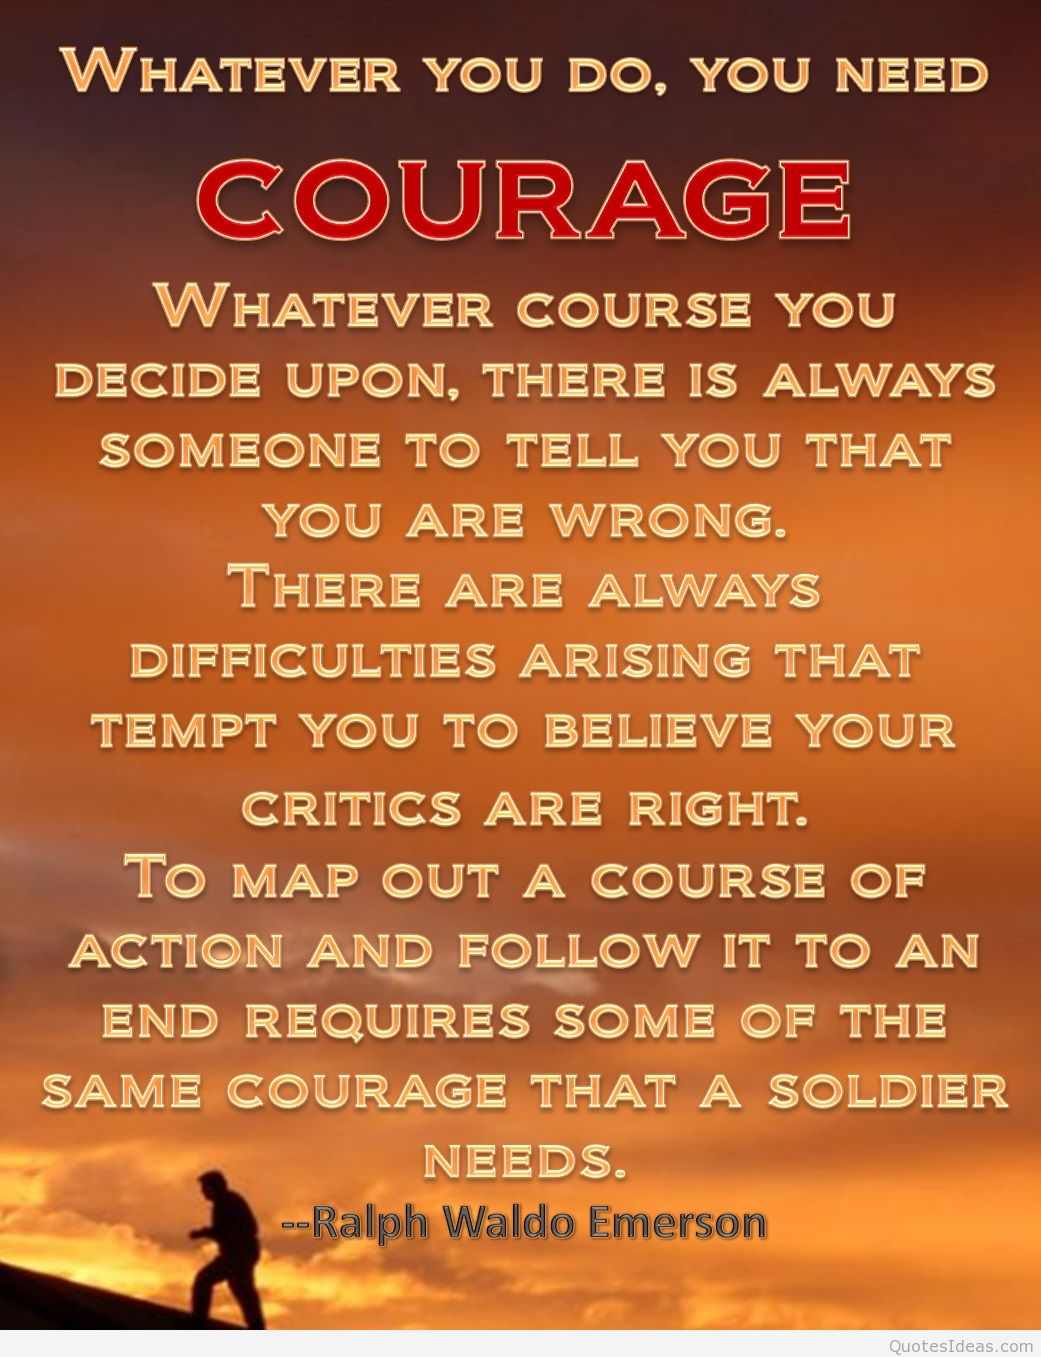 Awesome Courage Quotes